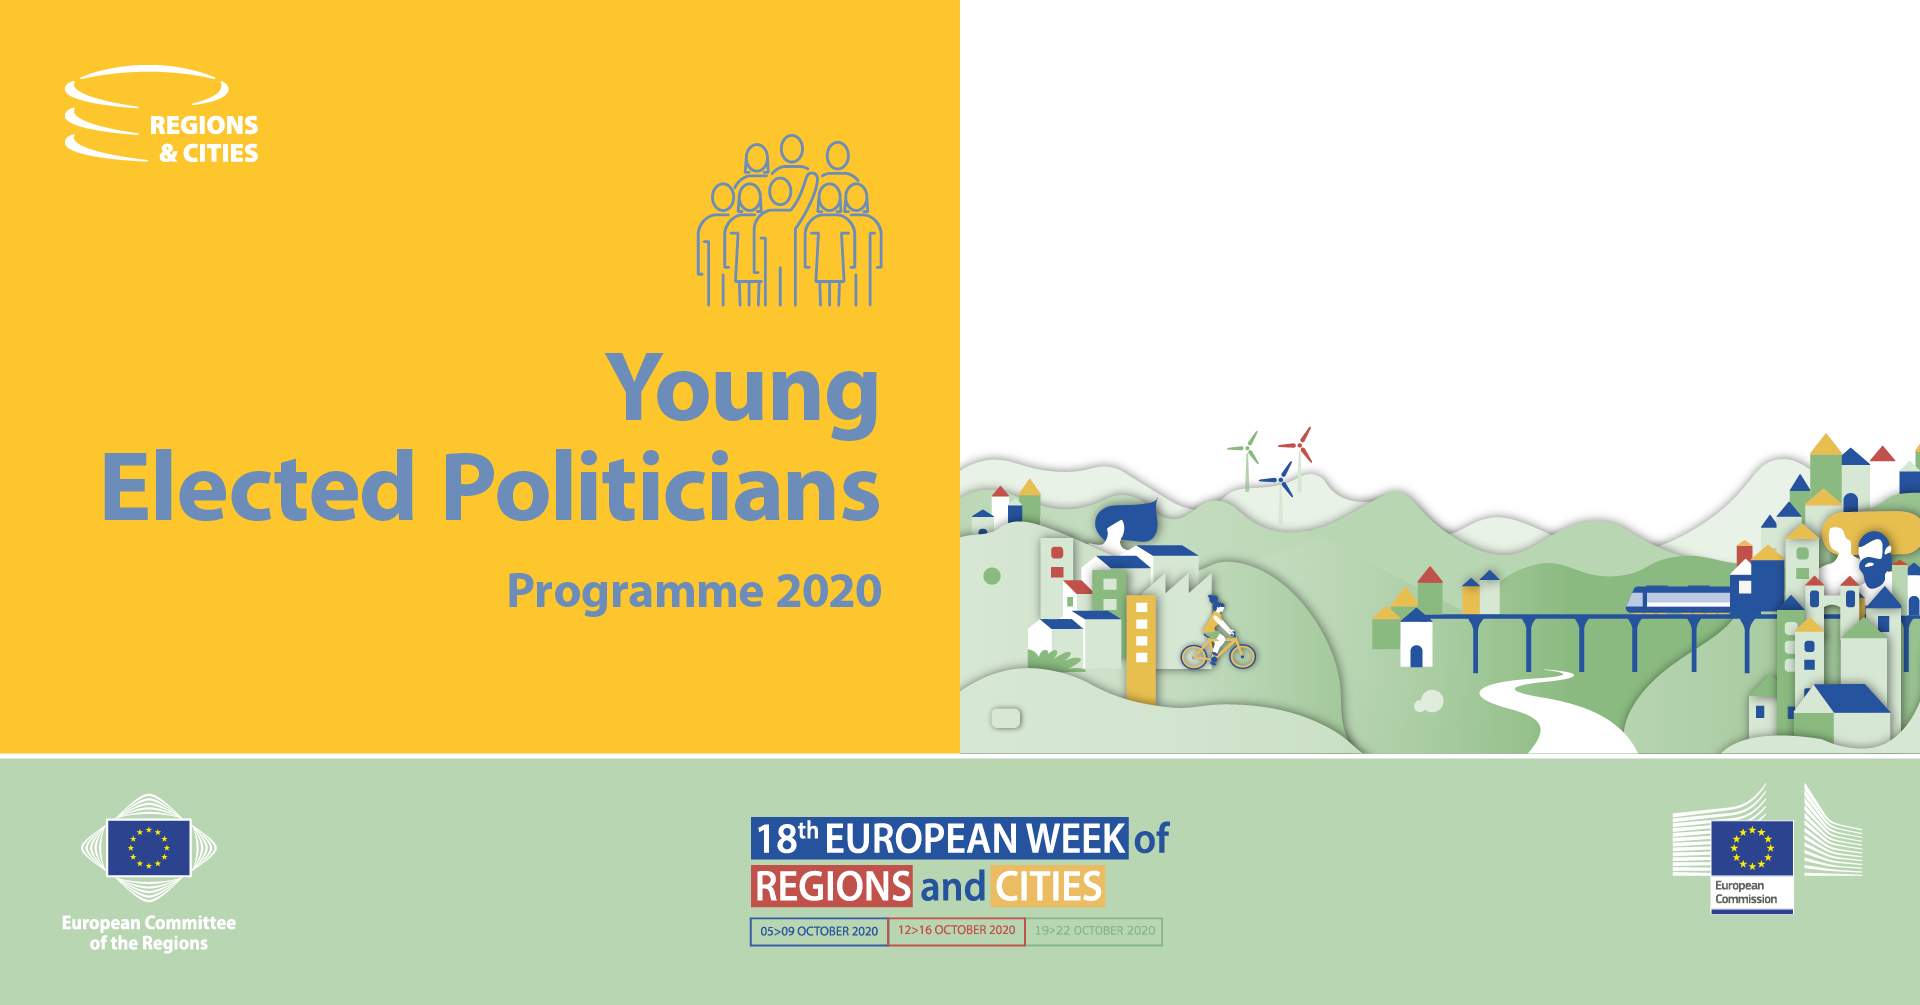 Young Elected Politicians - European Week of Regions and Cities 2020